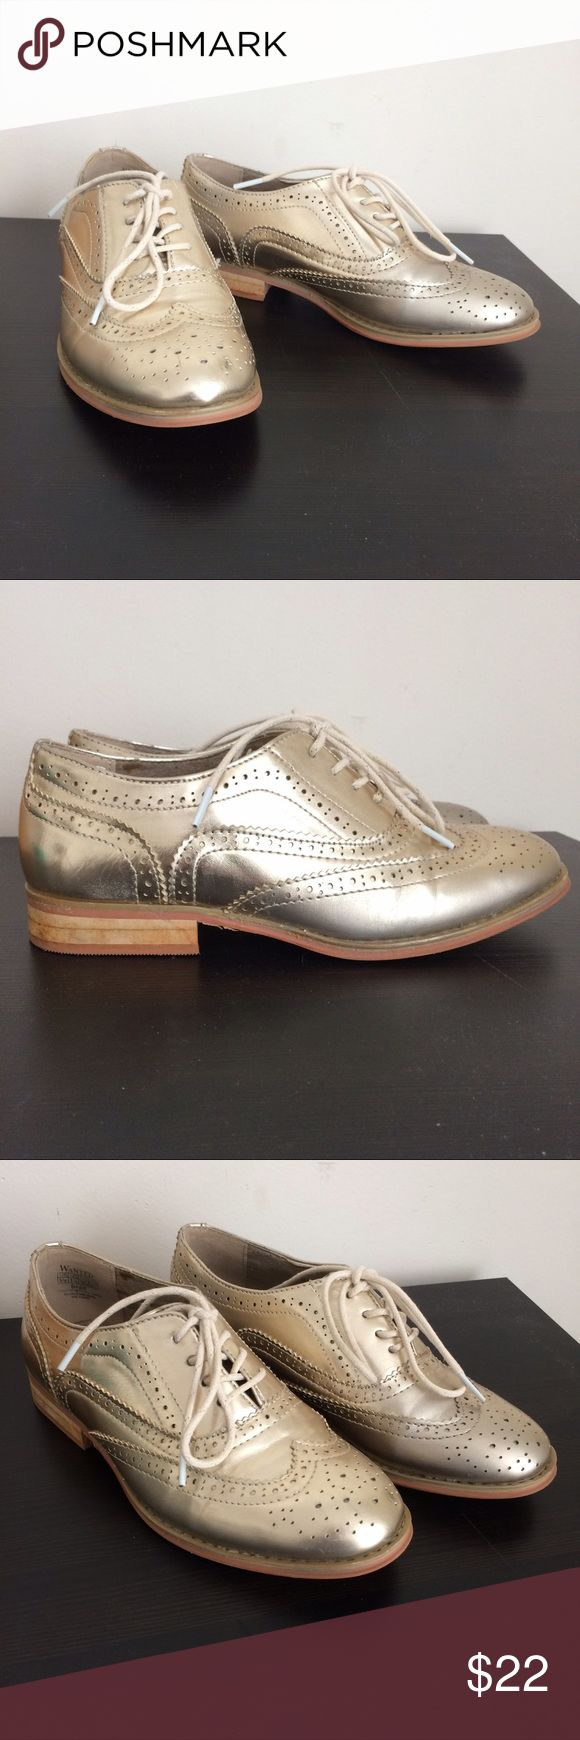 Gold Oxfords/Brogues - Probably Magic I mean just LOOK at them. They reek of enchantment. These shoes want to show you a whole new world. Wanted Shoes Flats & Loafers